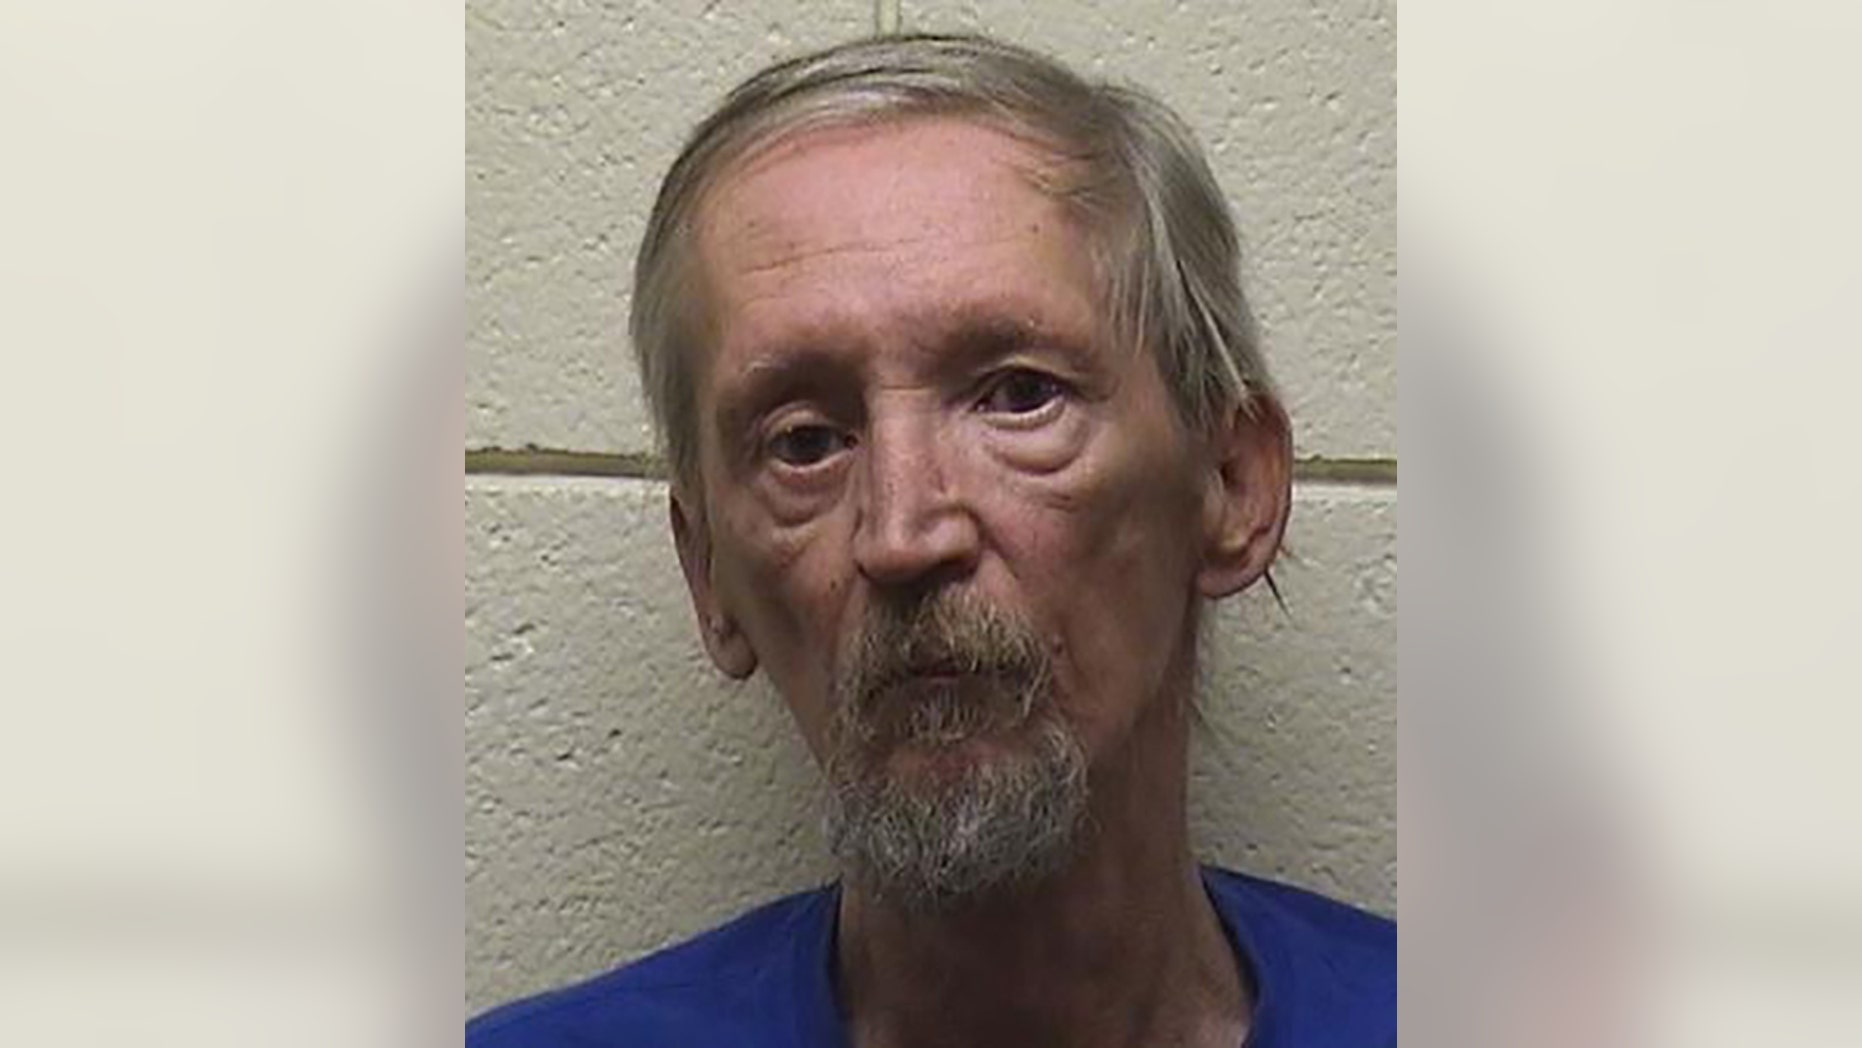 James Libby was sentenced to prison Tuesday for manslaughter in the death of his father.